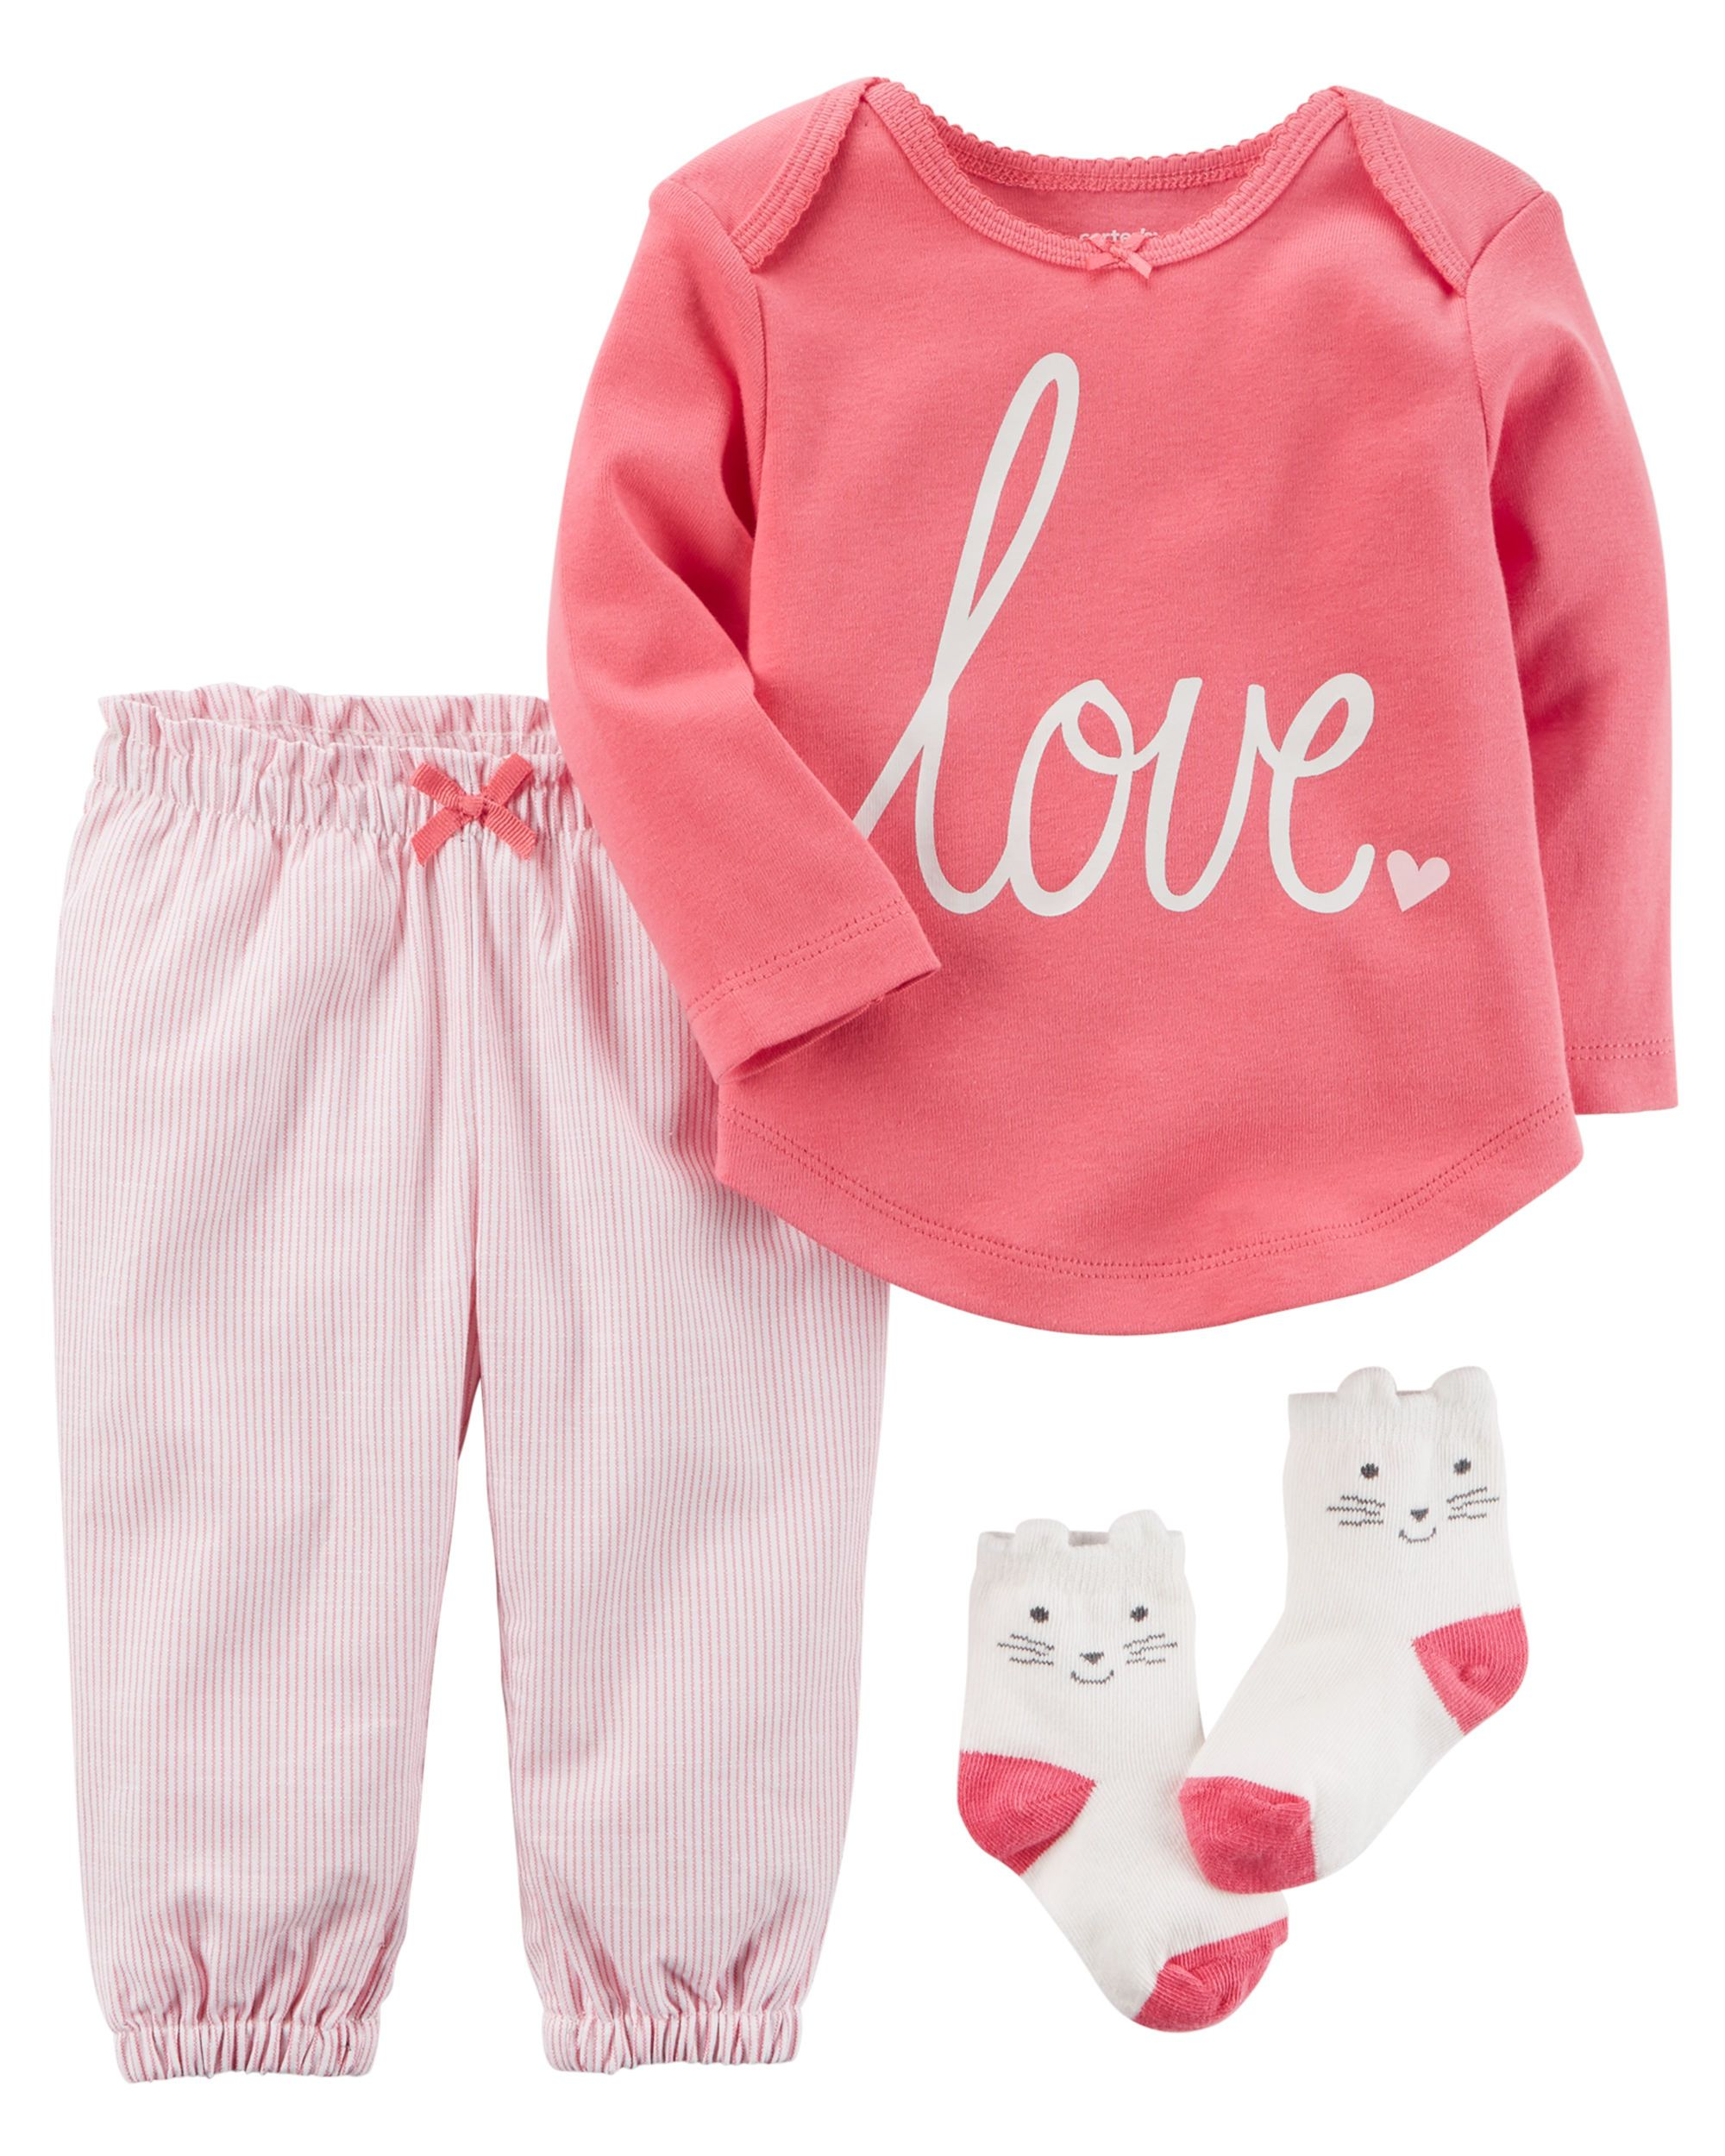 With a sweet graphic tee and striped bottoms this babysoft set